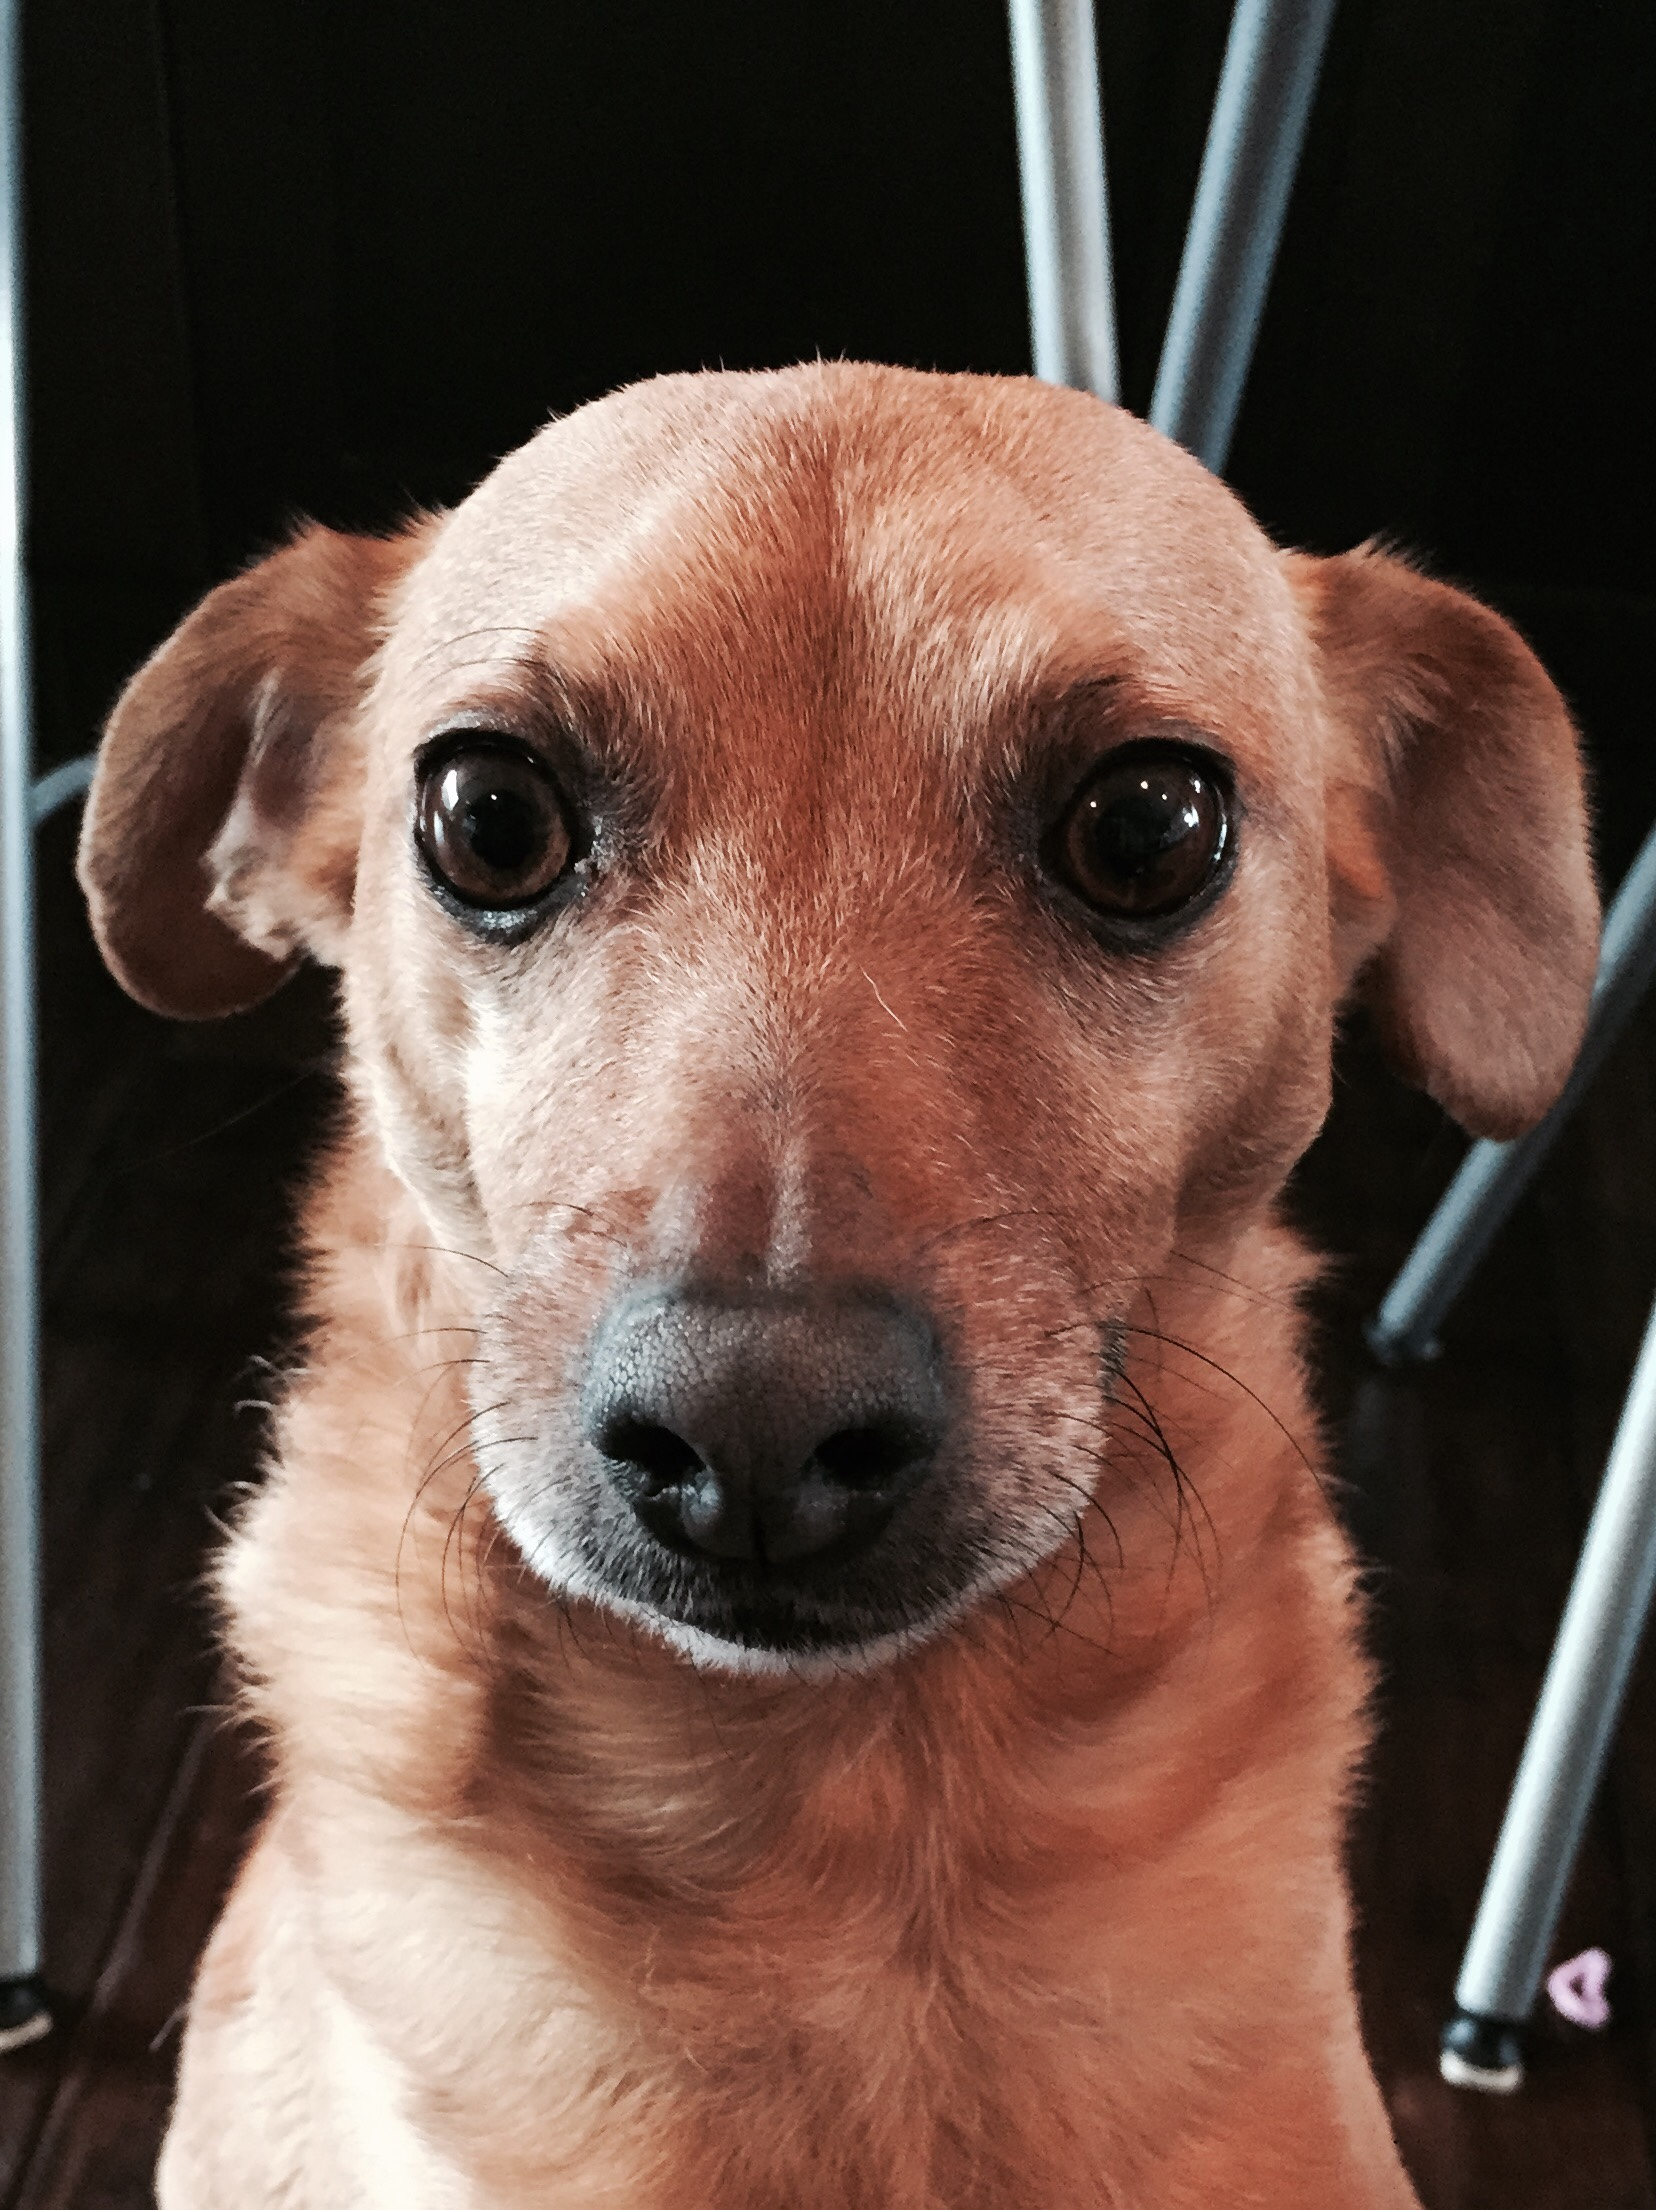 Kai, The Everyday Journalista, Everyday Journalista, Pet Rescue, Dog Rescue, Animal Rescue, High Kill Shelter, Mixed Breed, Chiweenie, Dogs, Pets, Pet Adoption, Animal Adoption, Dog Adoption,